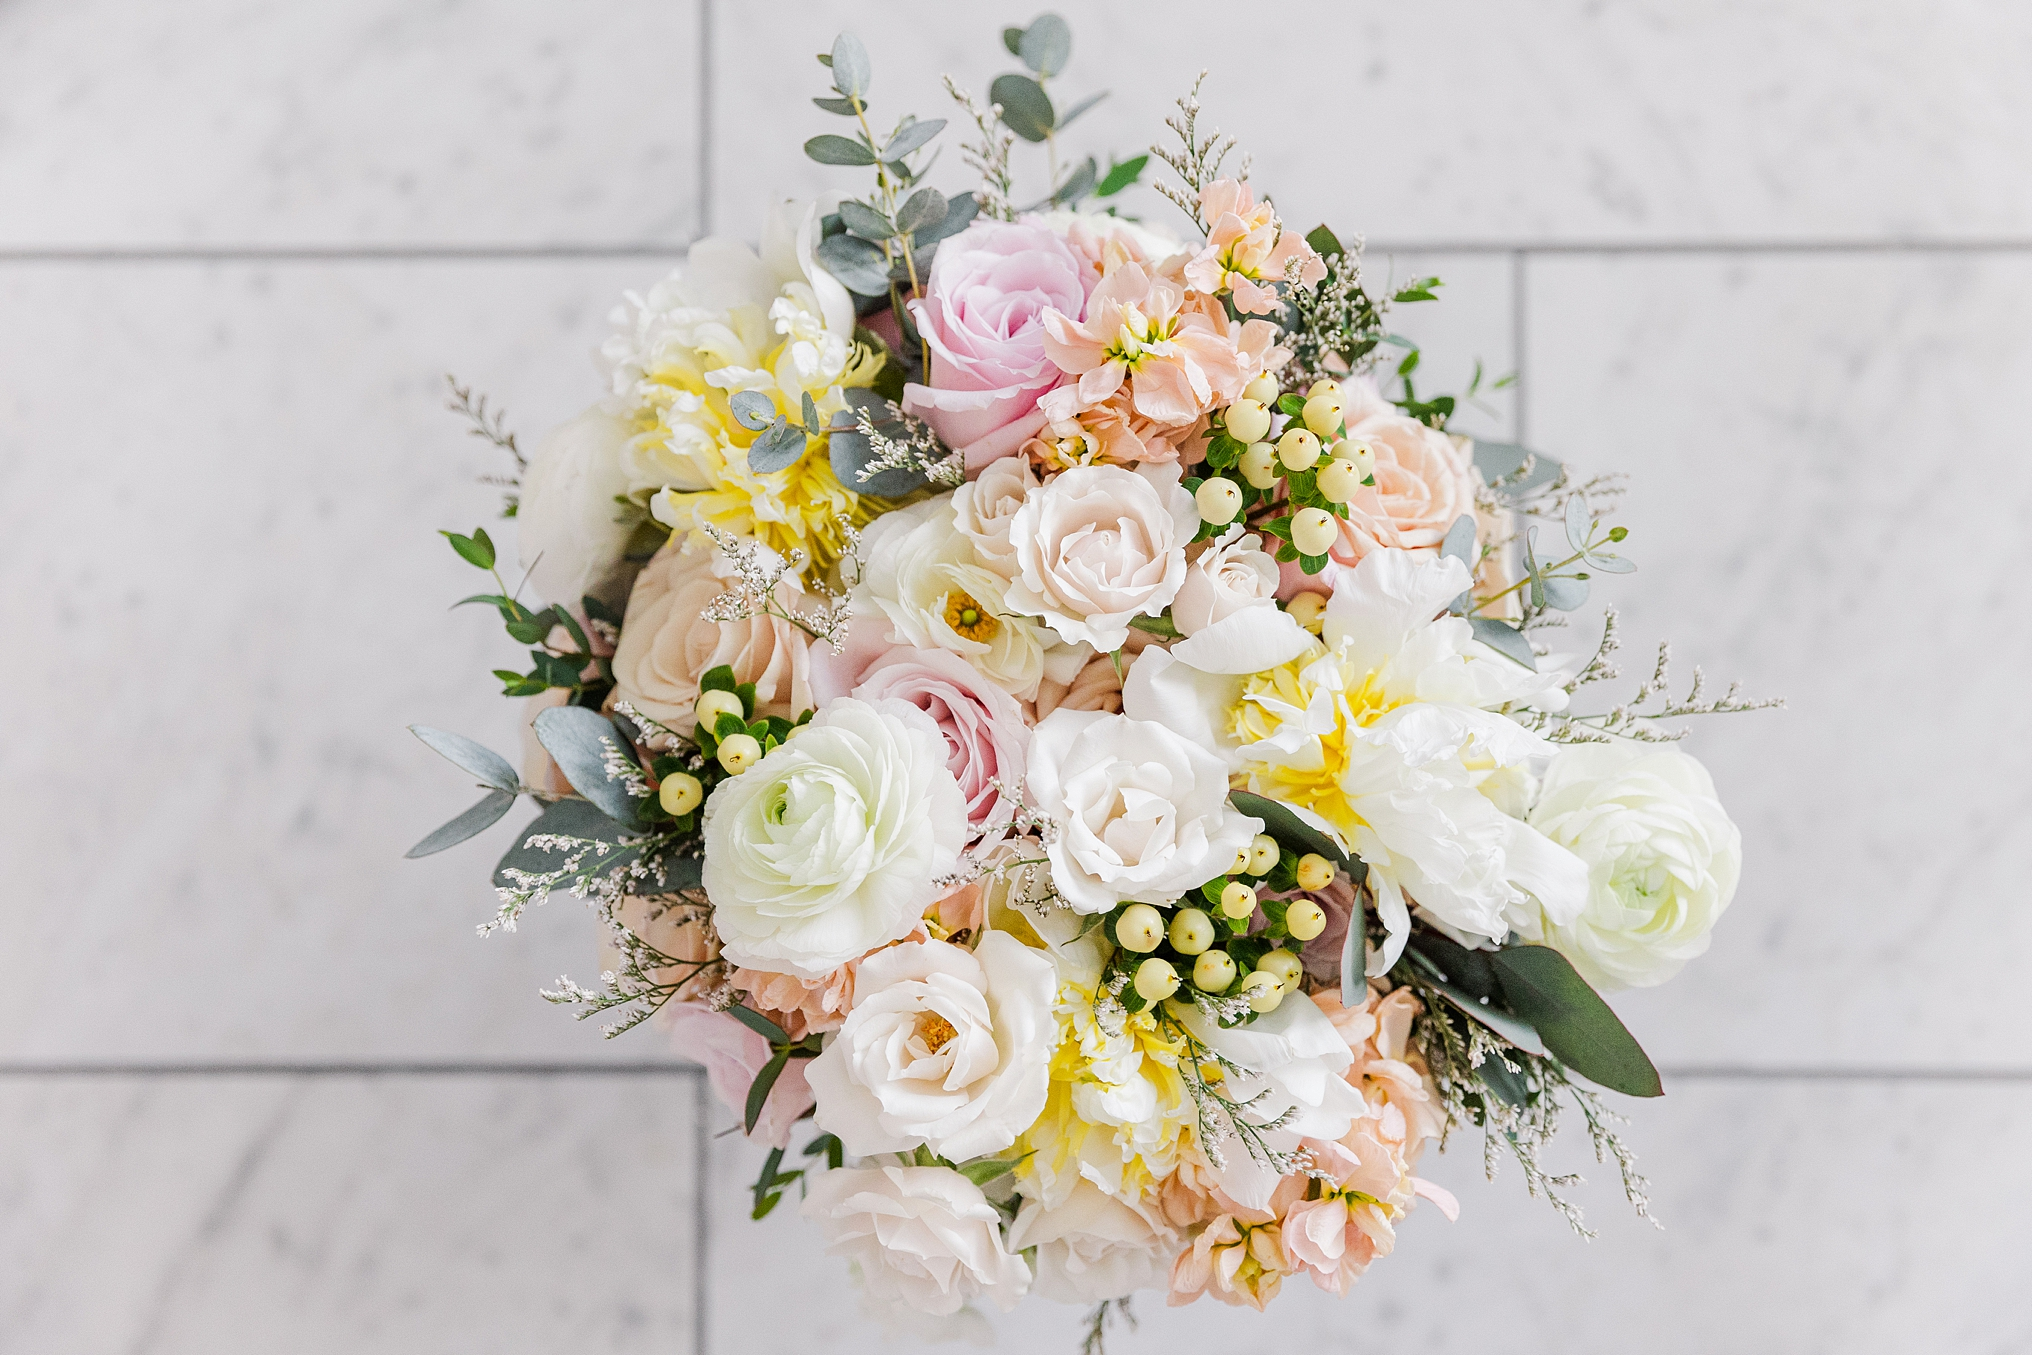 A bridal bouquet for a spring wedding by Fucshia Peony in NH.